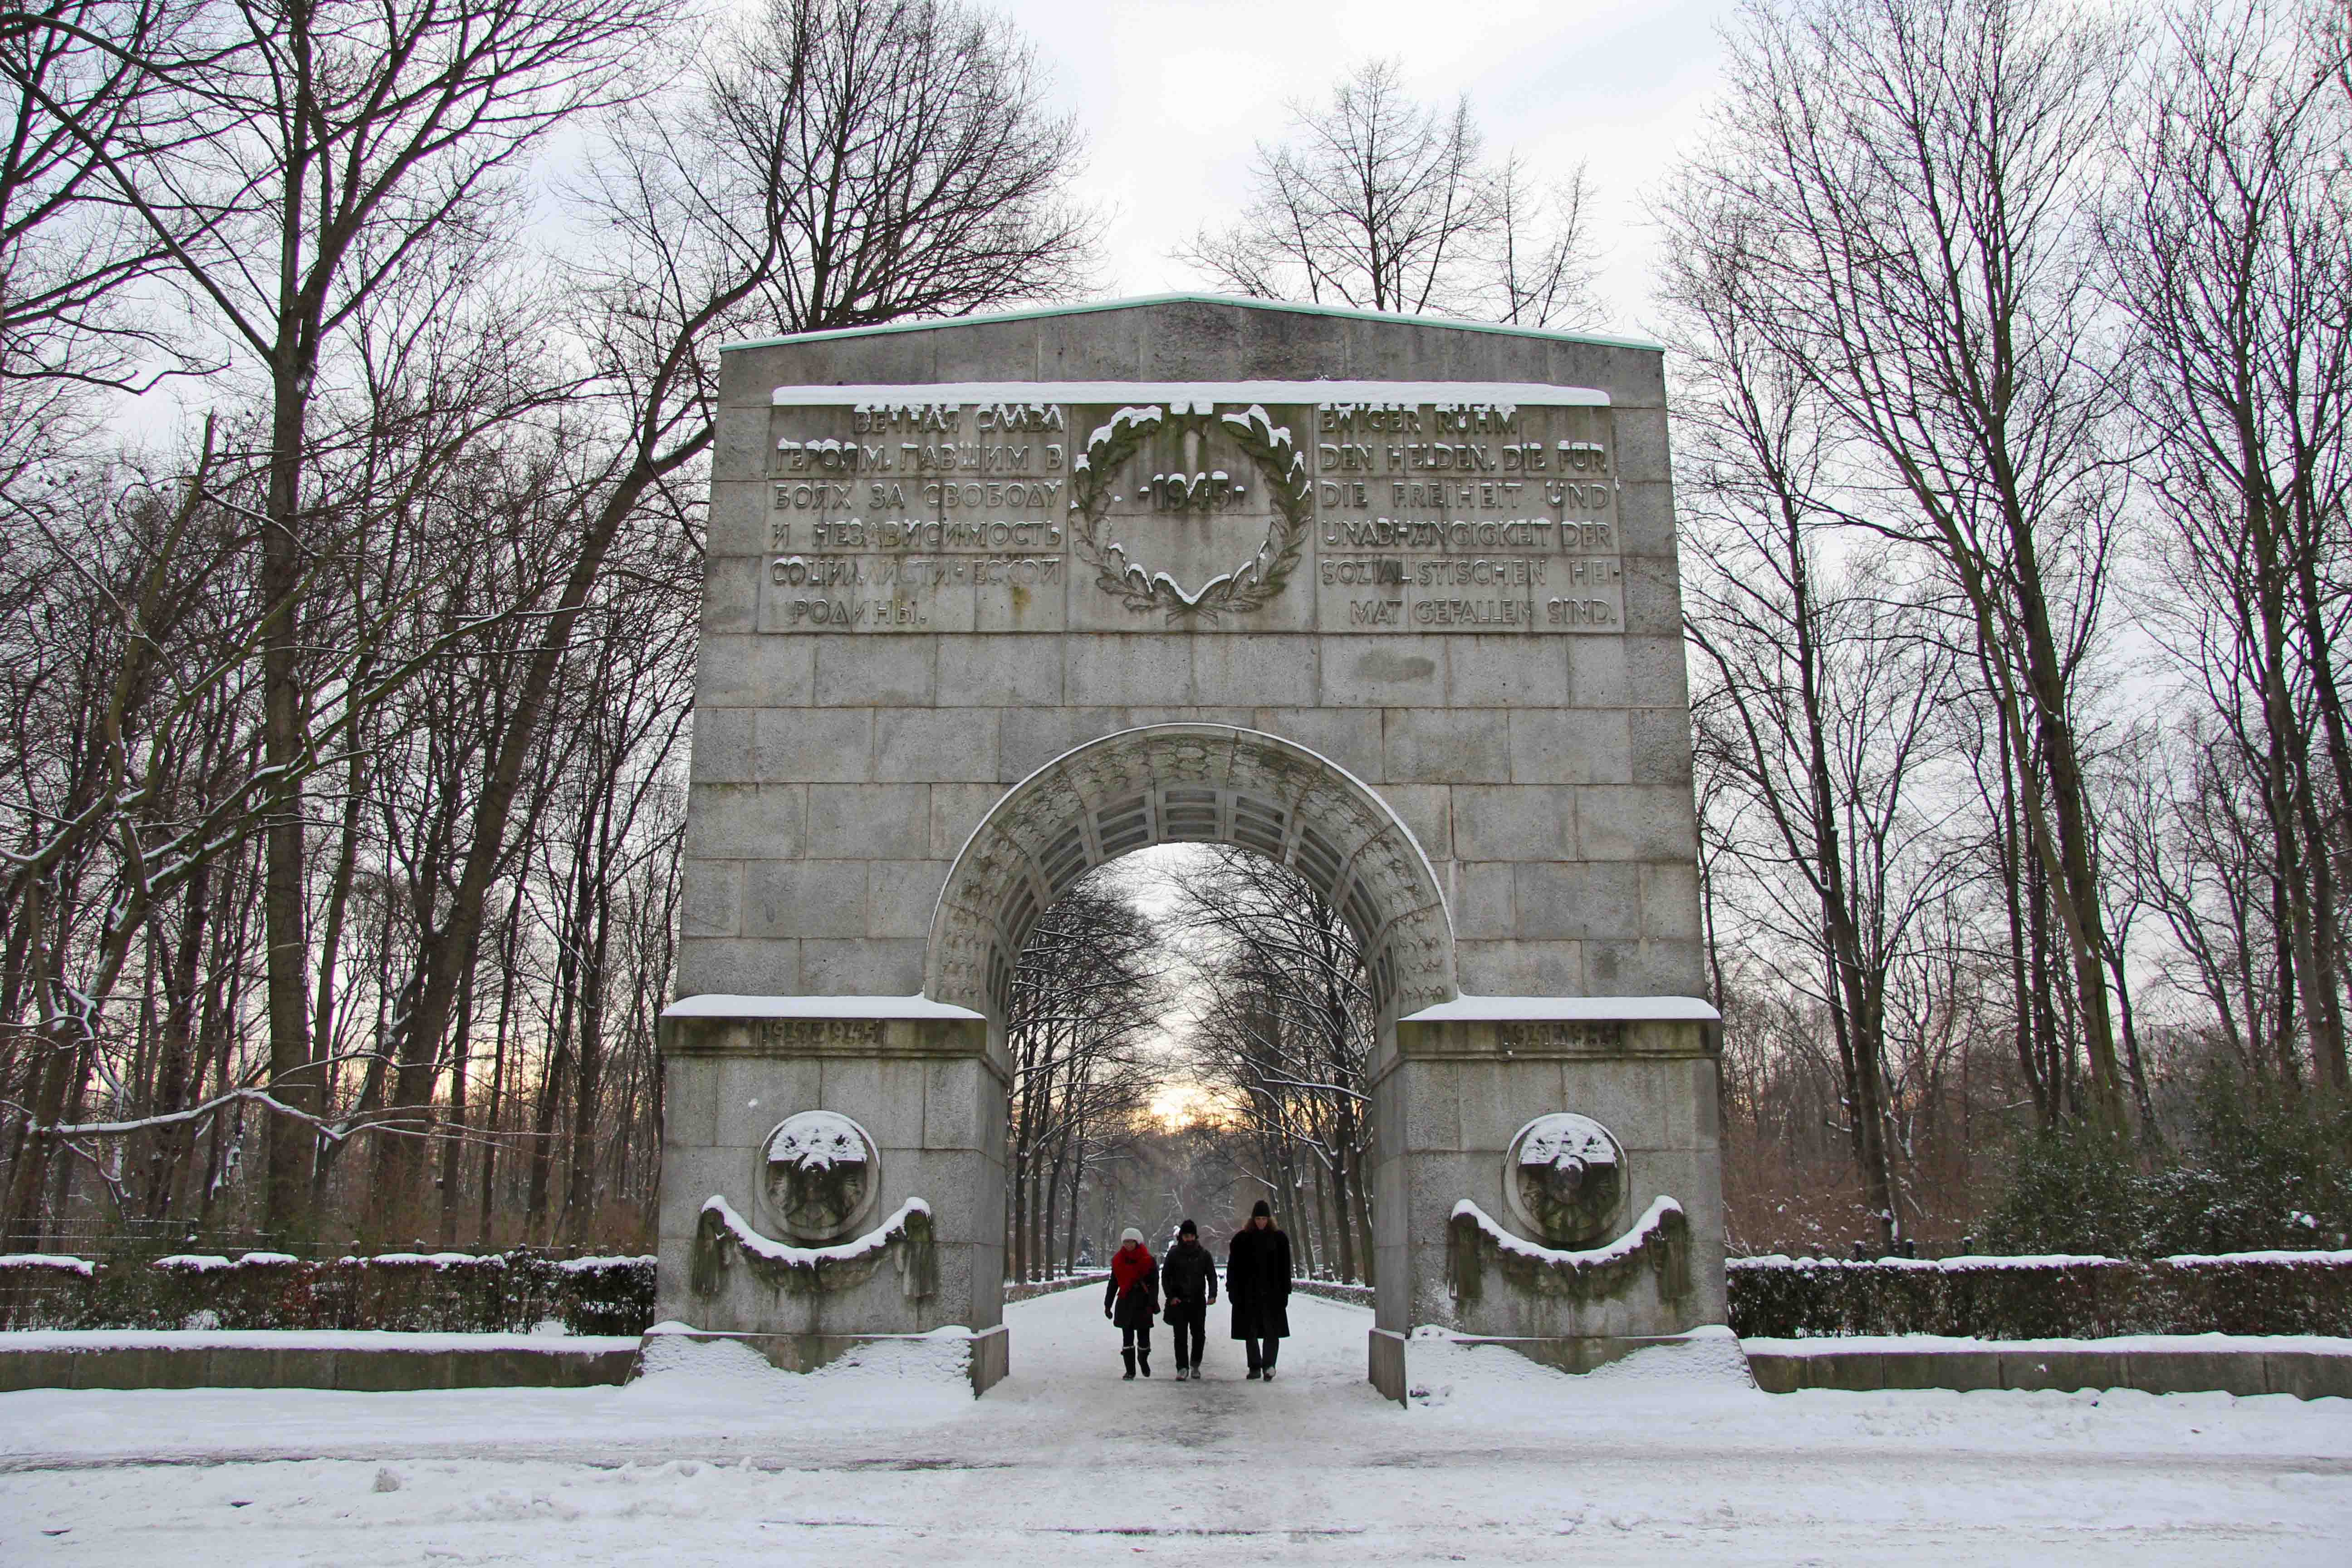 Archway at the entrance to the Soviet War Memorial in Treptower Park in Berlin